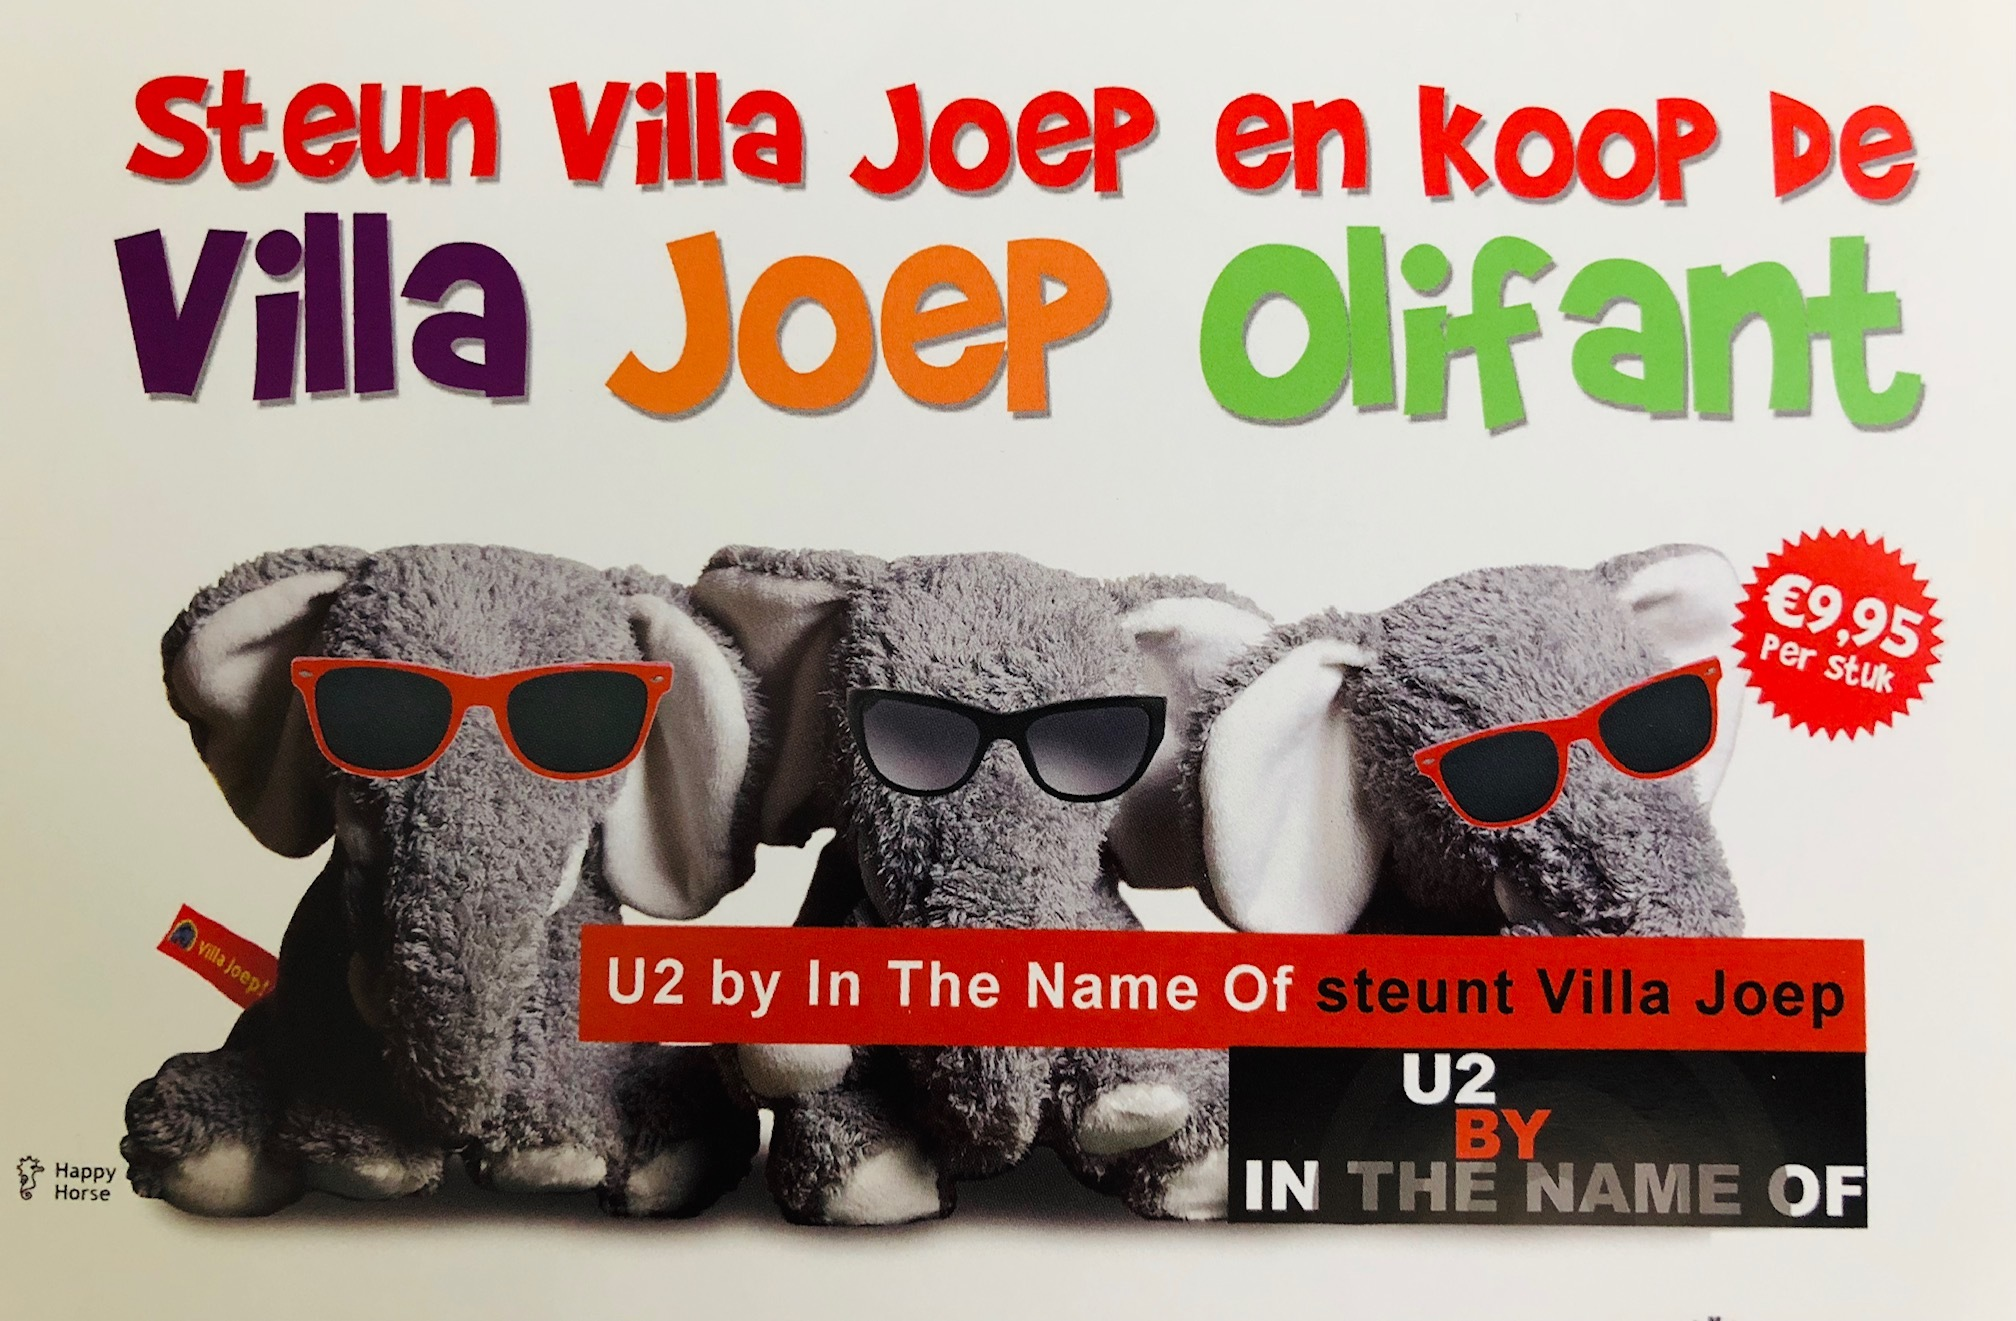 In the Name of steunt Villa Joep